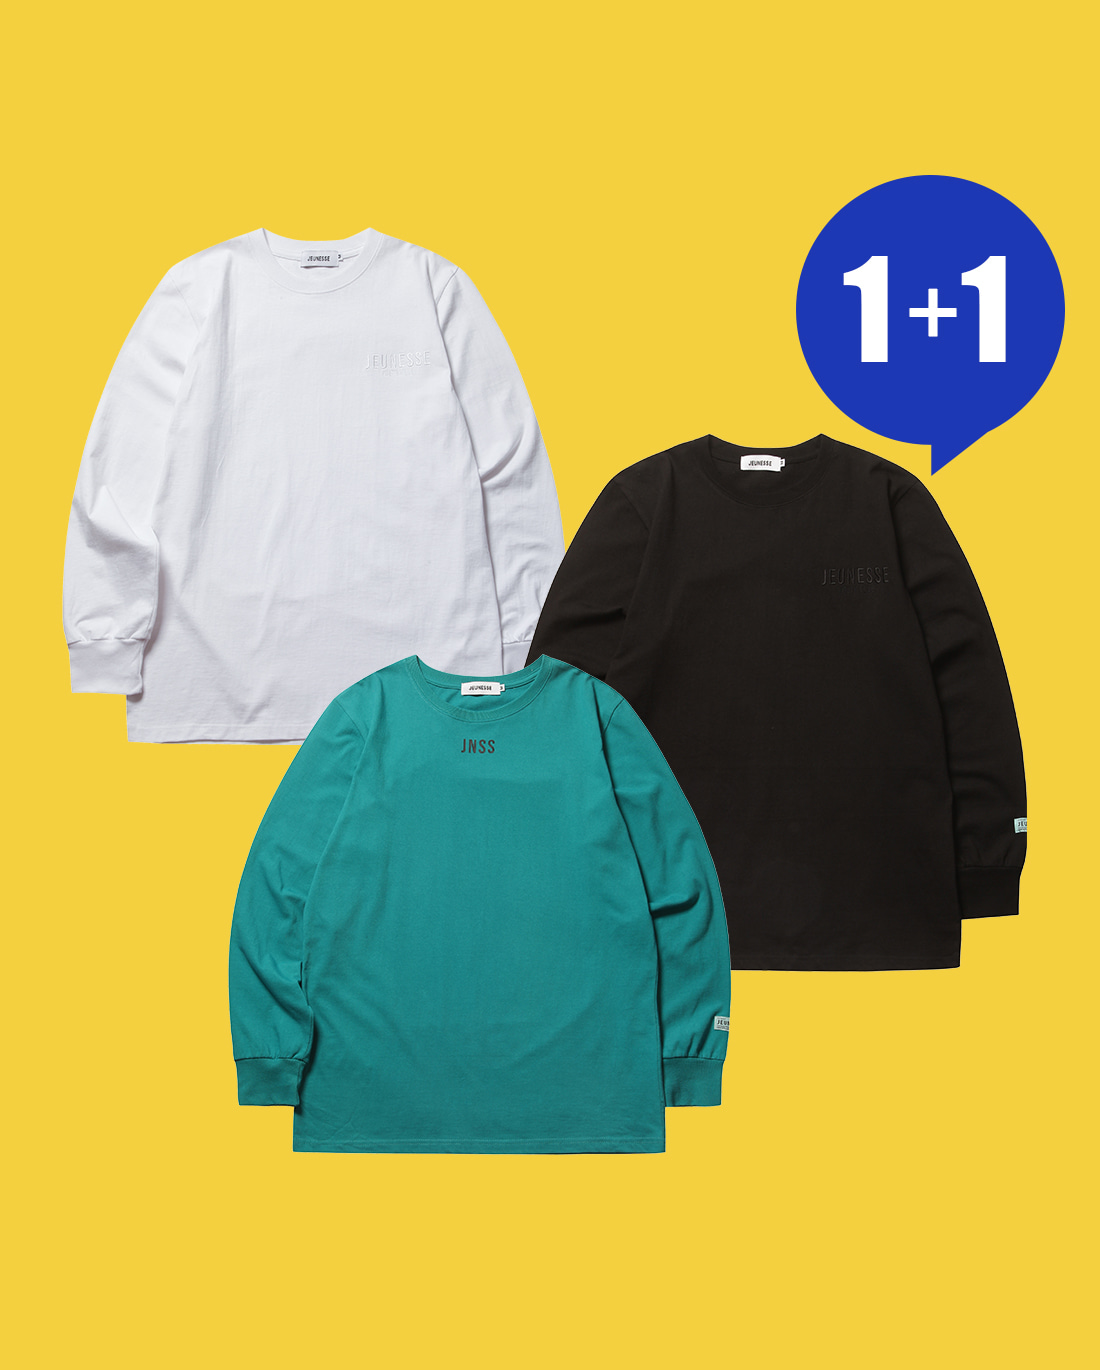 [1+1] Paint Back L/S Tee & Cupido Back L/S Tee